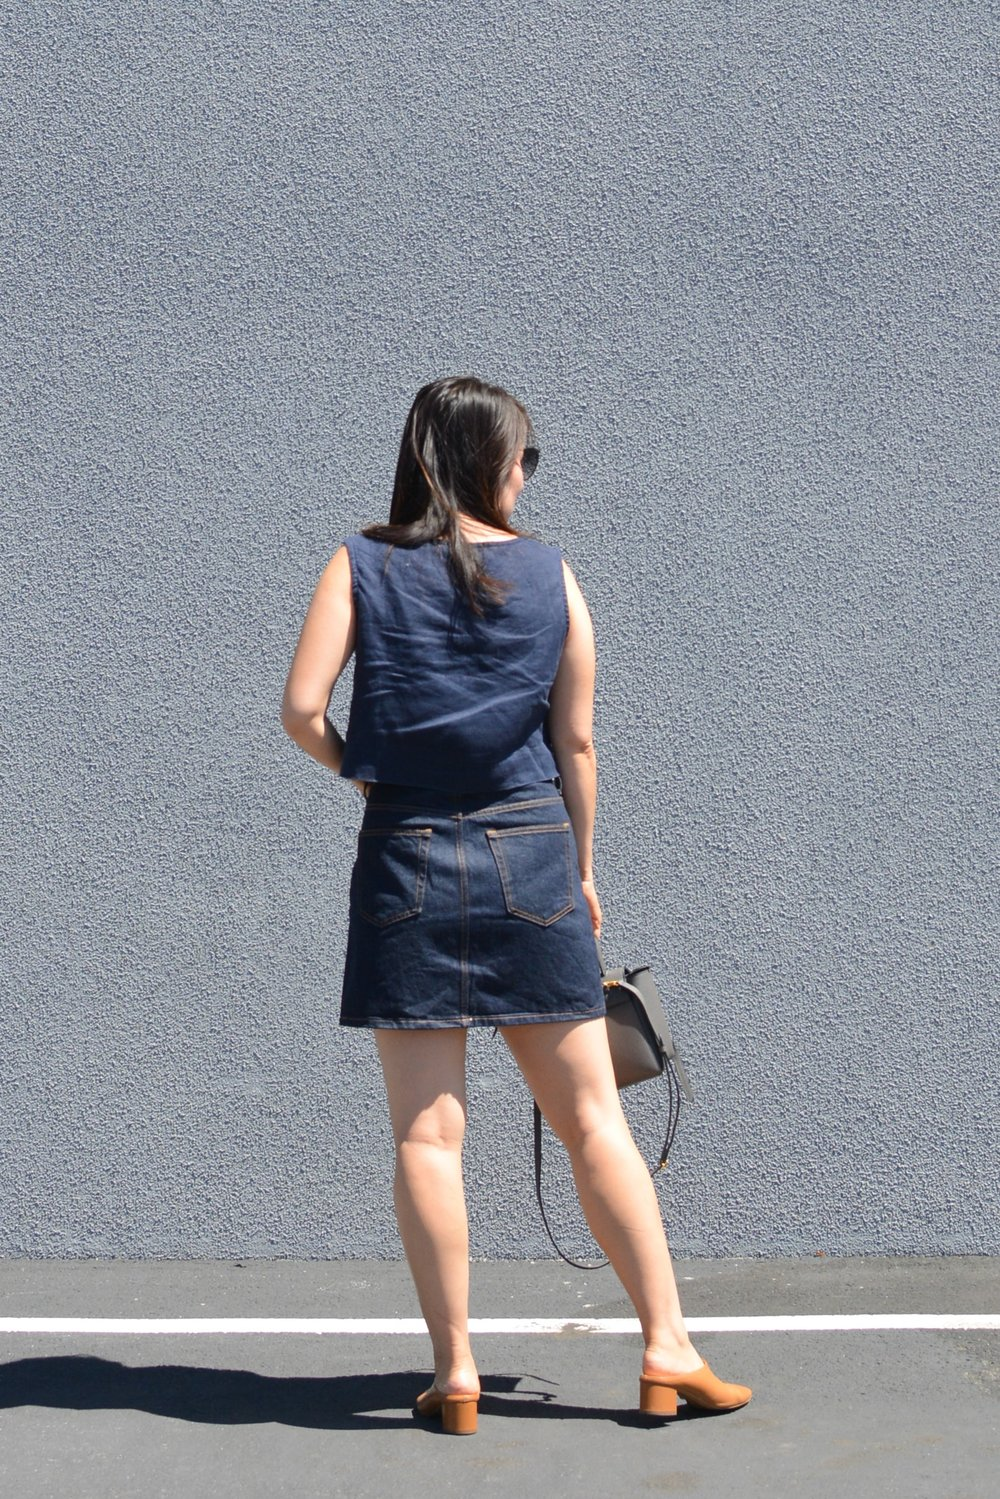 Everlane Review The Denim Skirt (3 of 3)-min.jpg